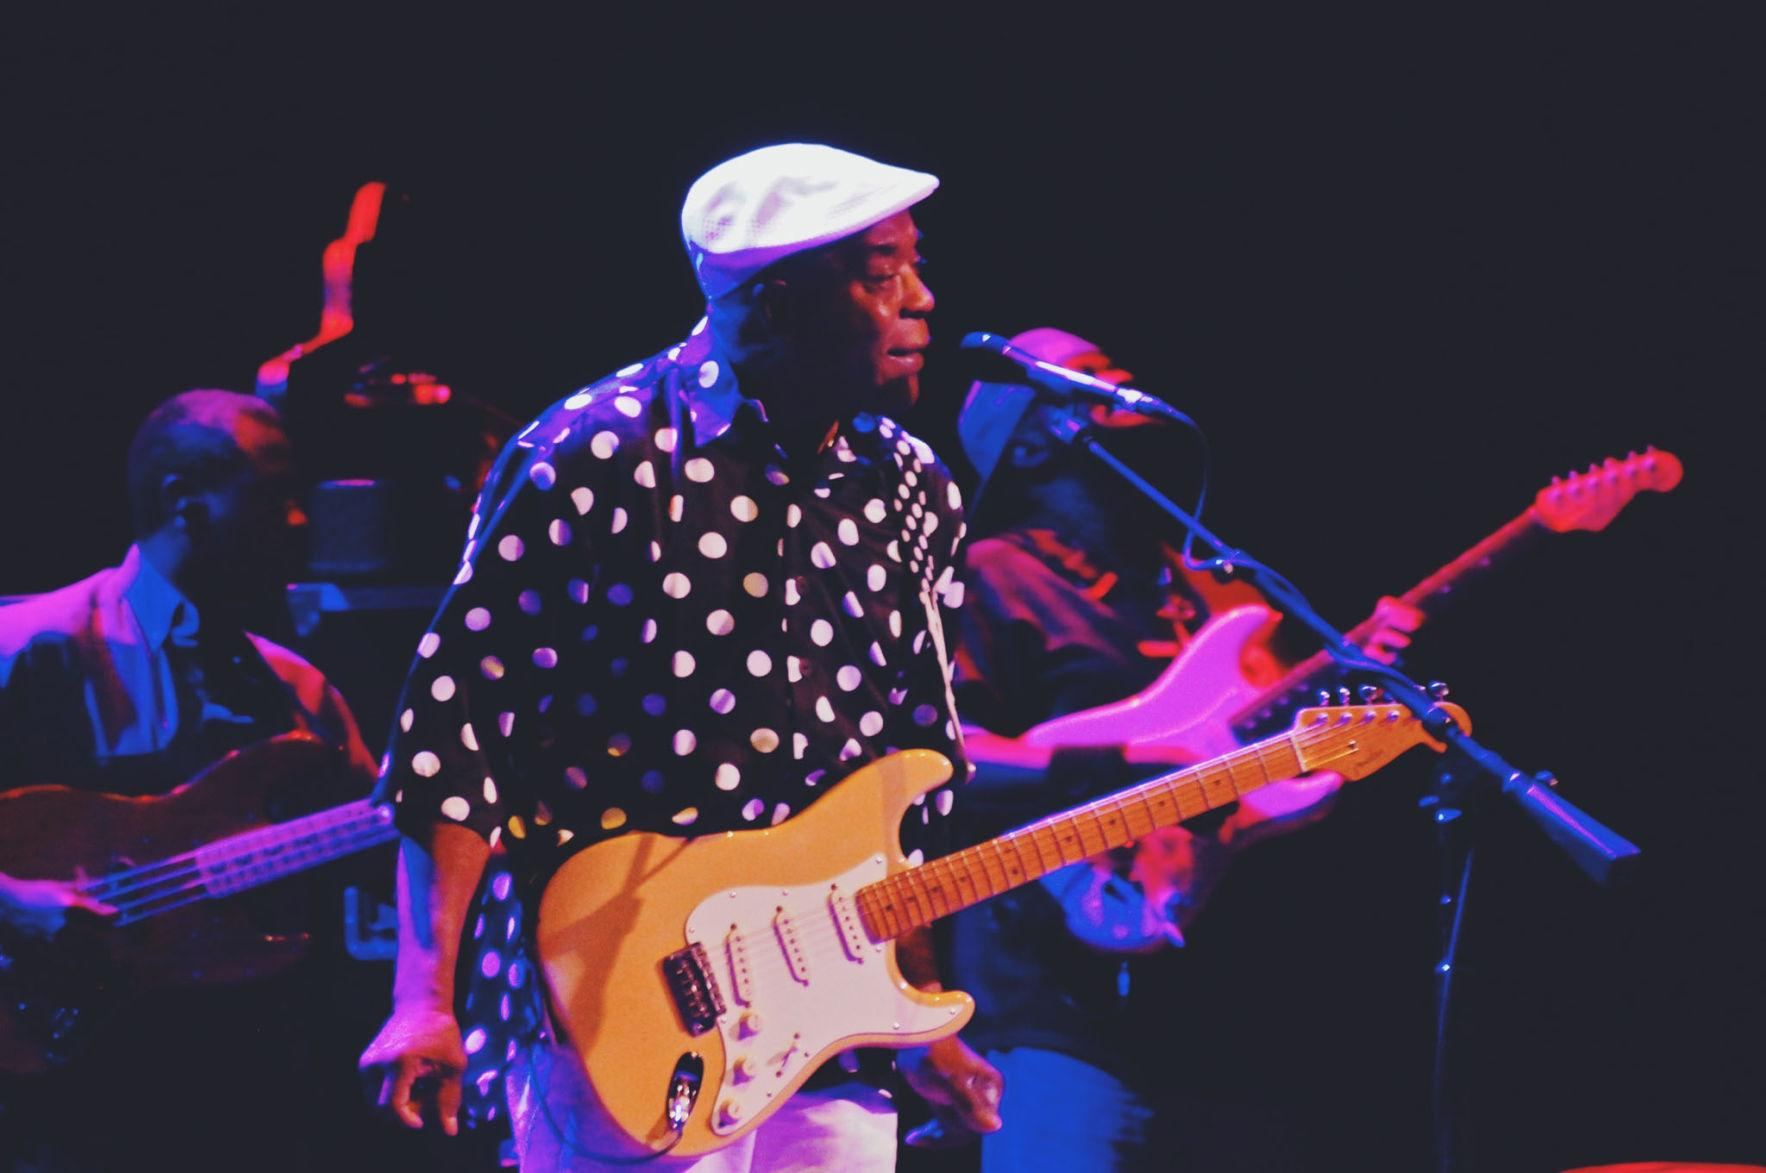 Legendary Louisiana-born bluesman Buddy Guy took the stage at ELLNORA in 2013 at the Krannert Center.